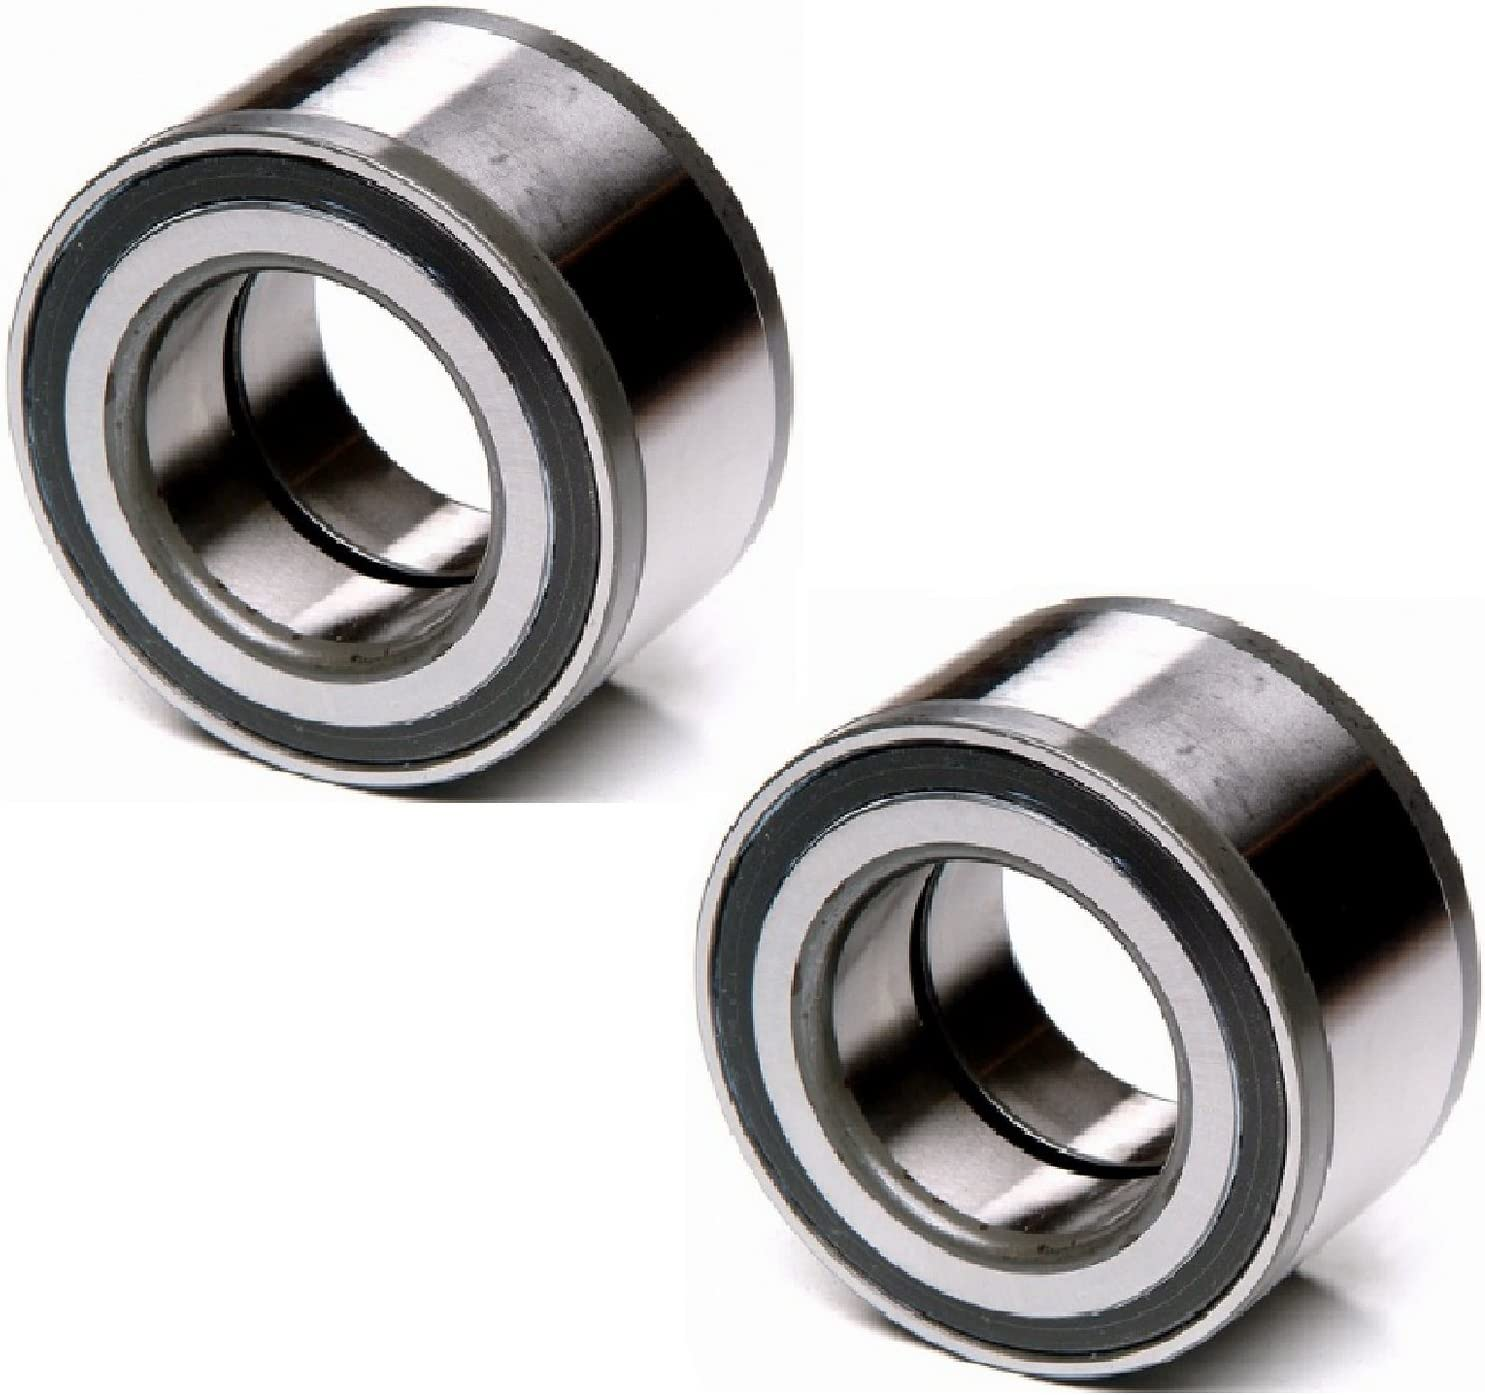 2WD 4WD AWD 8USAUTO Pair Front Left and Right Wheel Bearing fit 1996 1997 1998 1999 2000 2001 2002 Toyota 4RUNNER